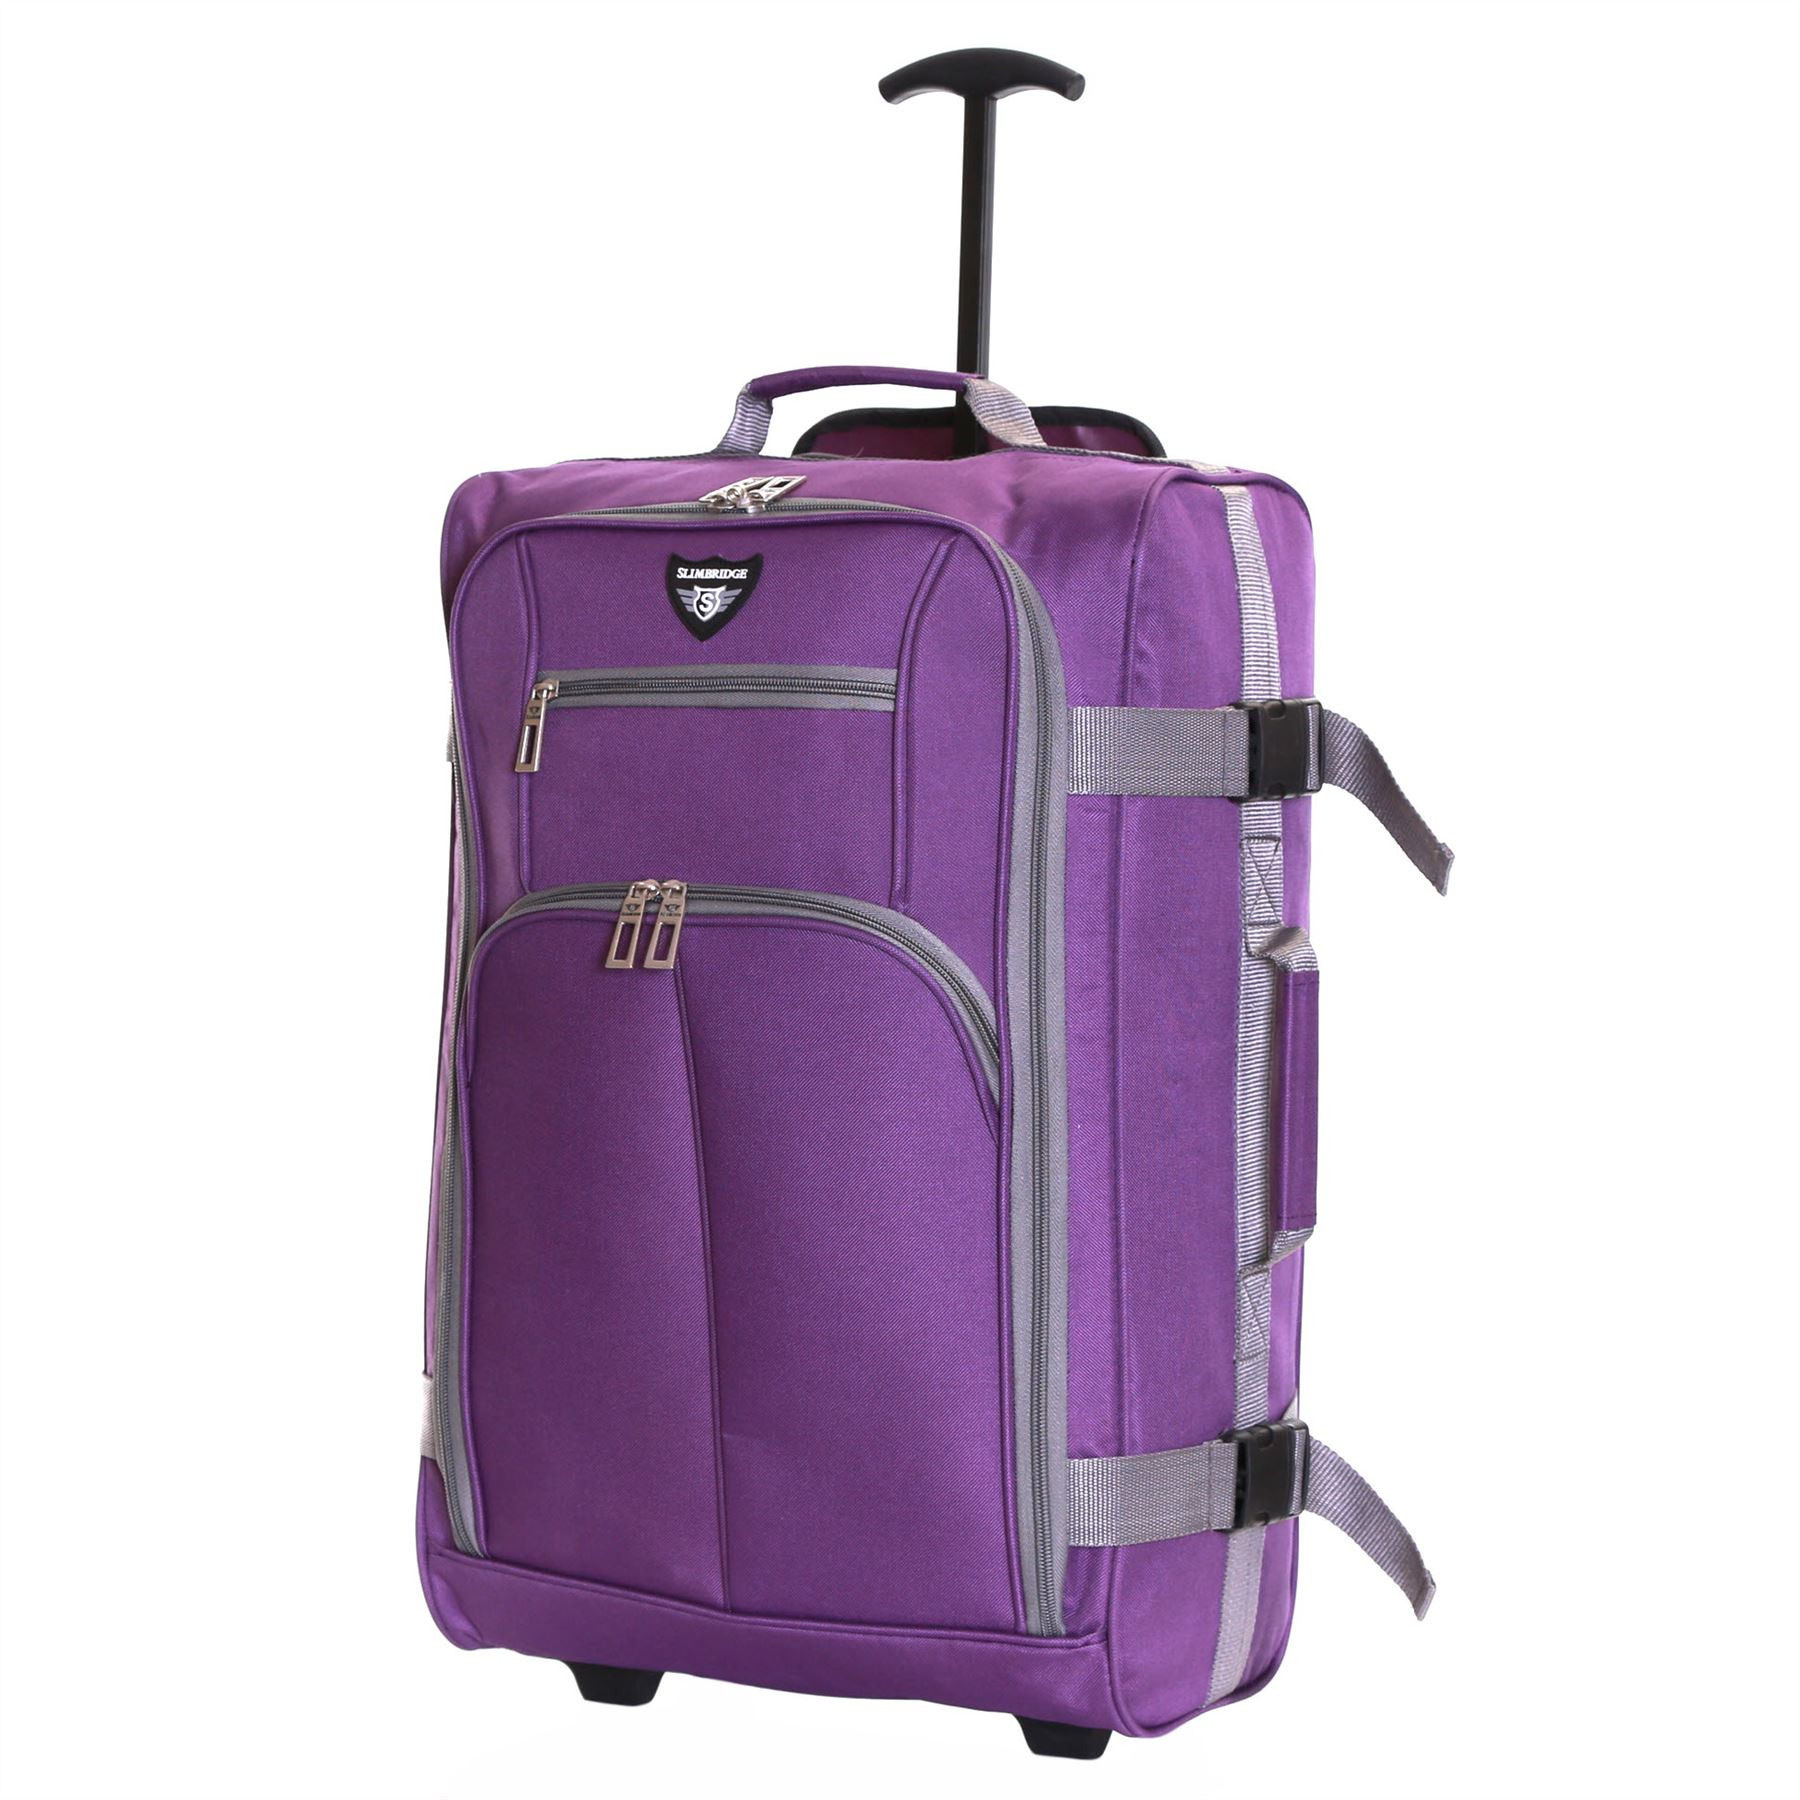 Ryanair-Easyjet-Set-of-2-Cabin-Approved-Hand-Trolley-Suitcases-Luggage-Case-Bags thumbnail 10